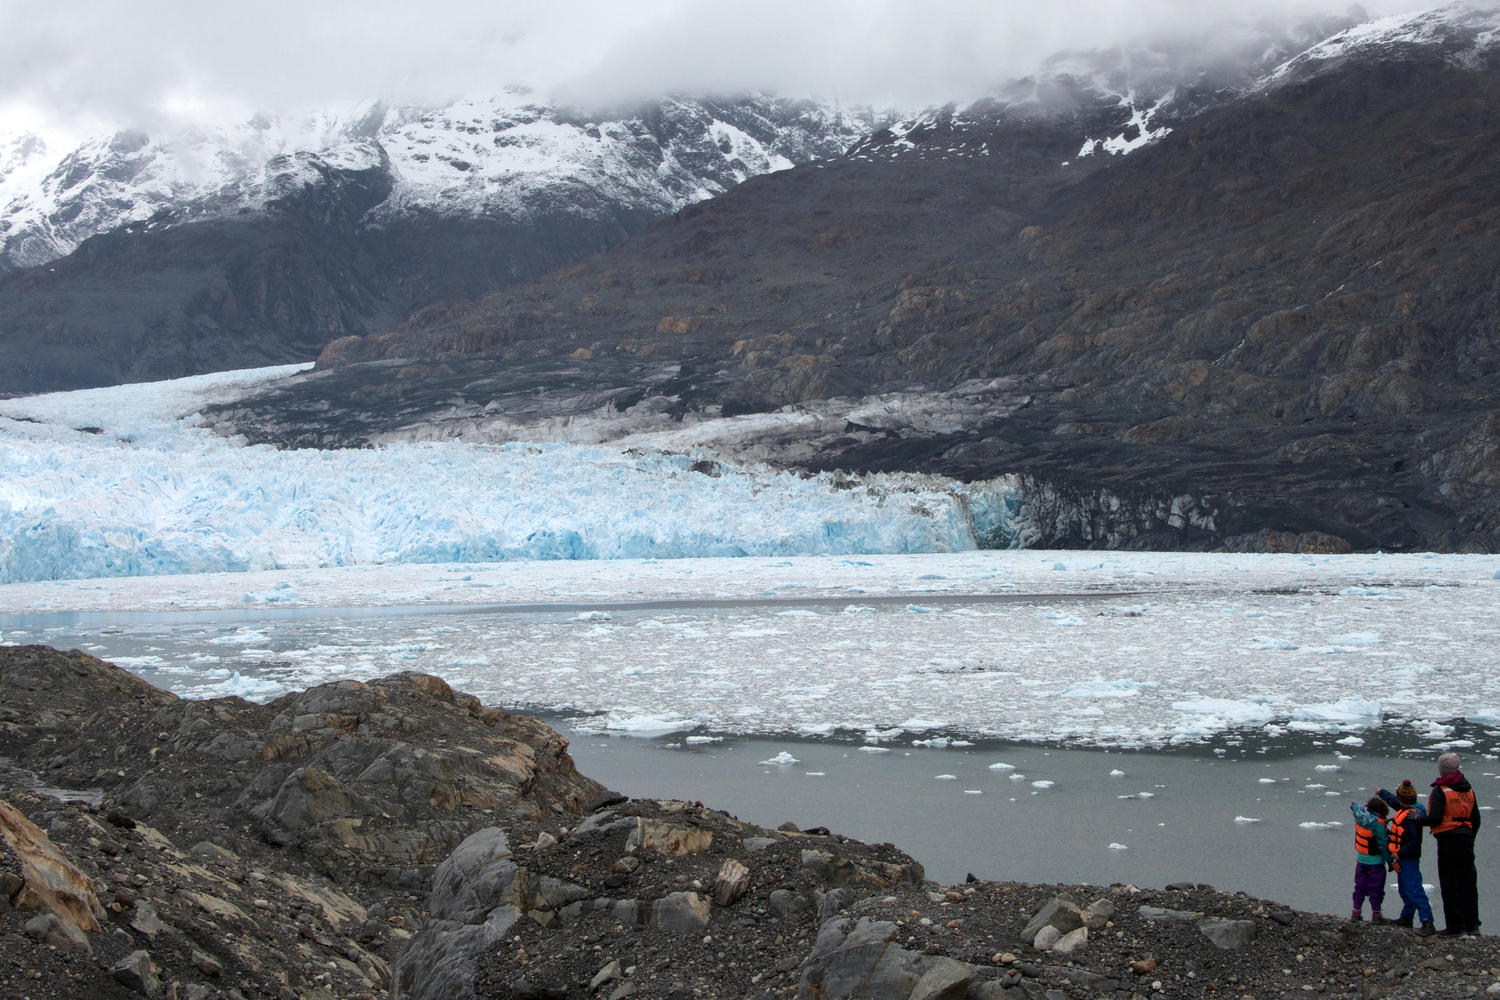 A private encounter with the Jorge Montt glacier in the Southern Patagonian icefield